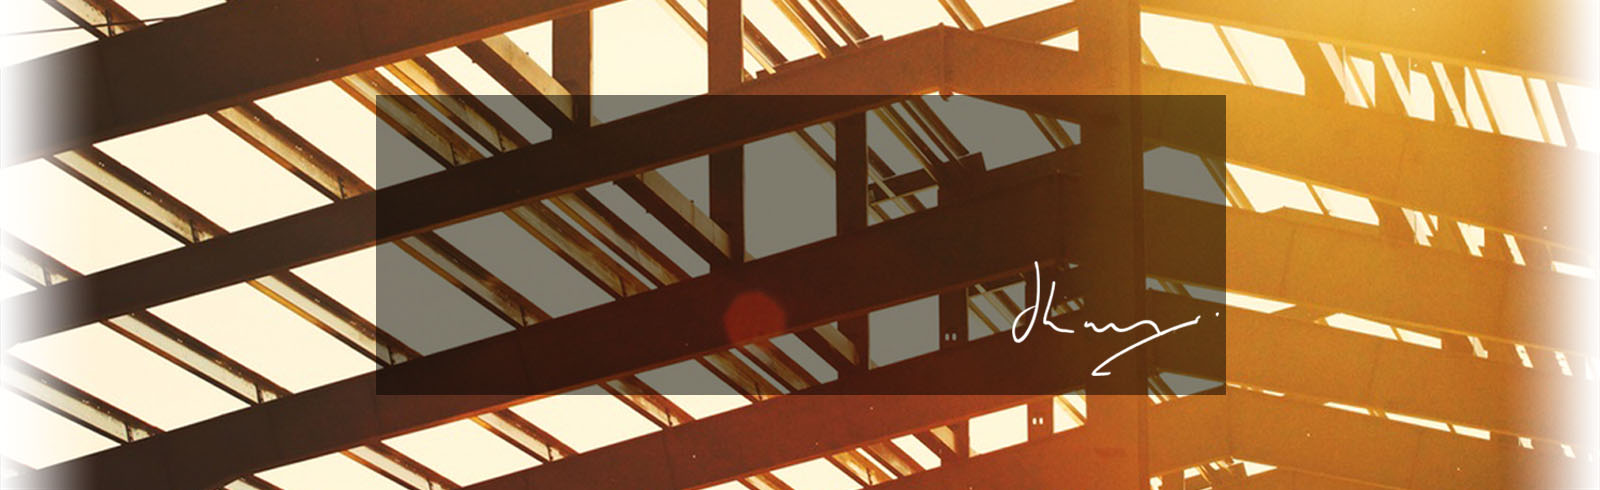 Construction beams with sunshine coming through with signature of James Law, client of Hodgsons Chartered Accountants in Cornwall